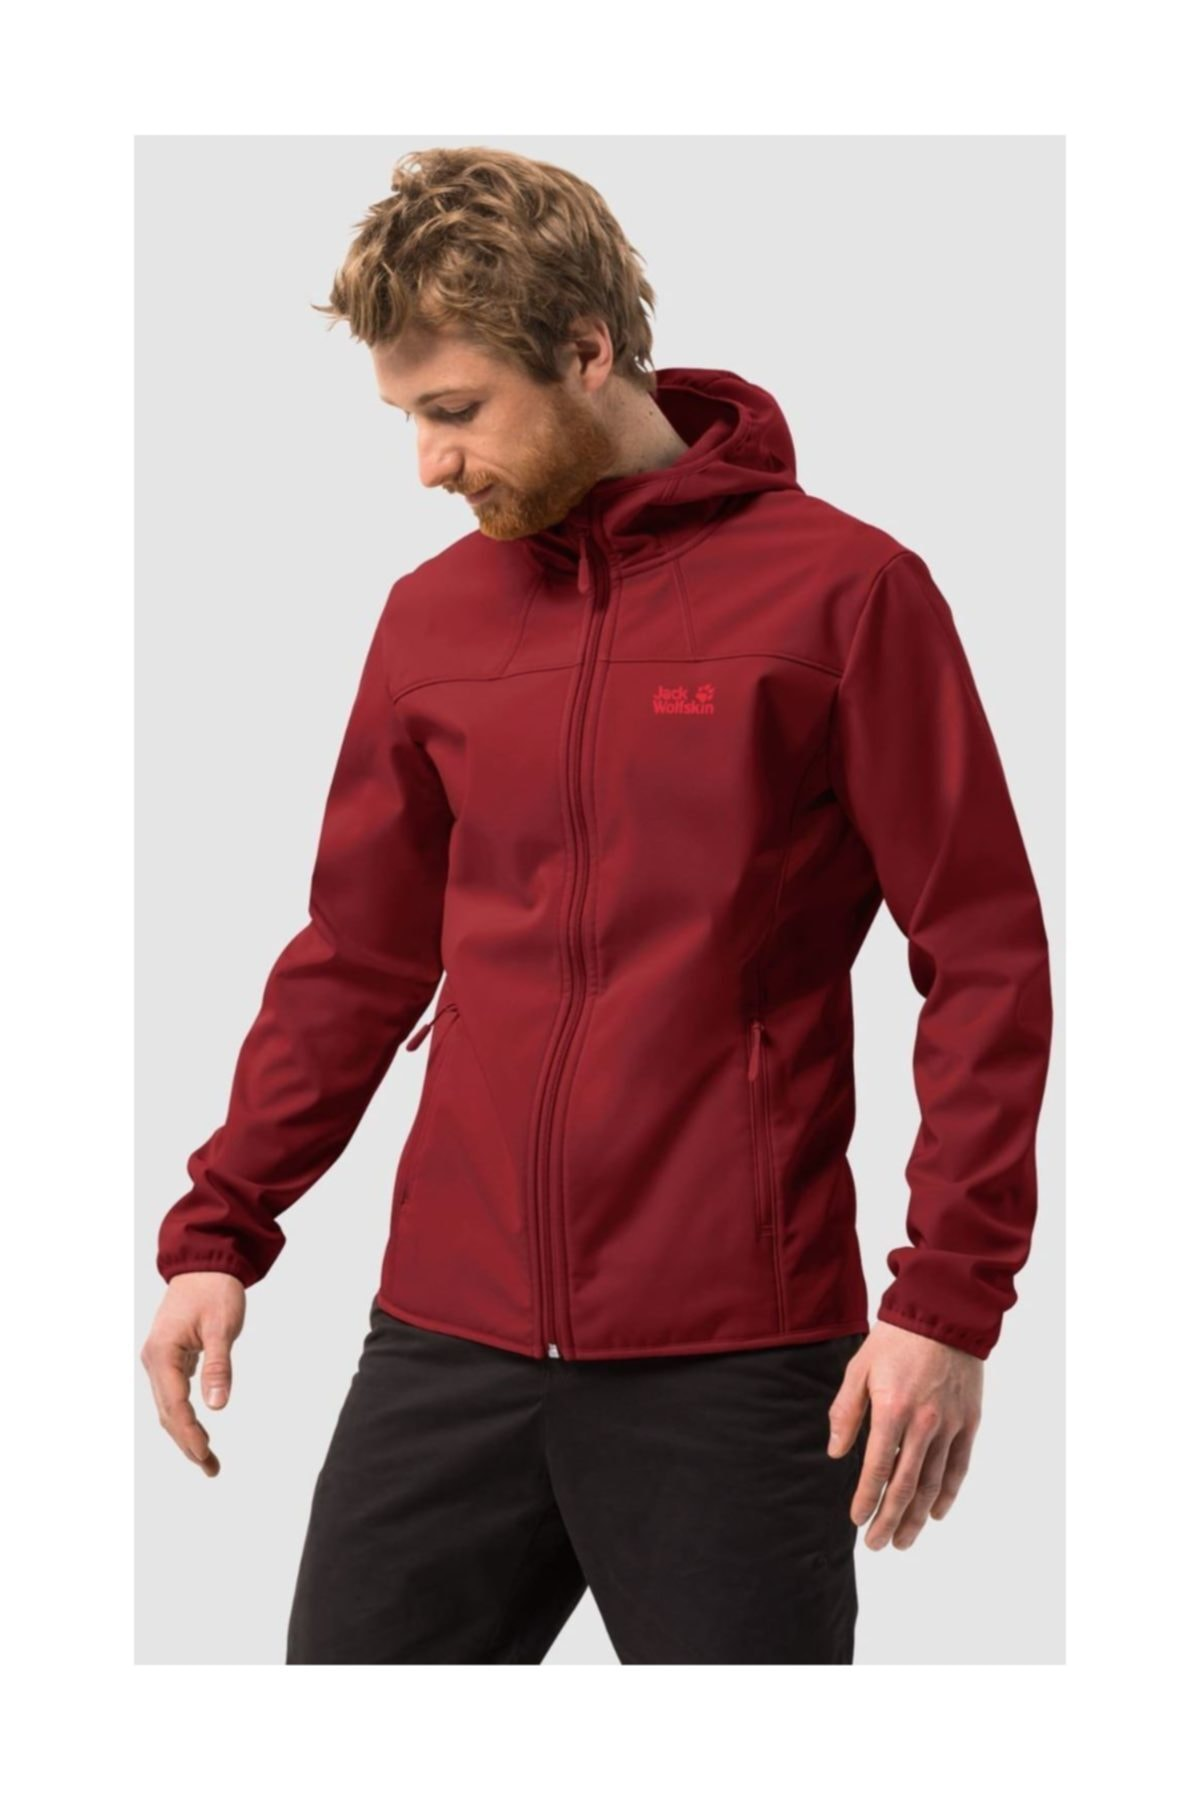 Jack Wolfskin Northern Point Erkek Mont 1304001-20895 1